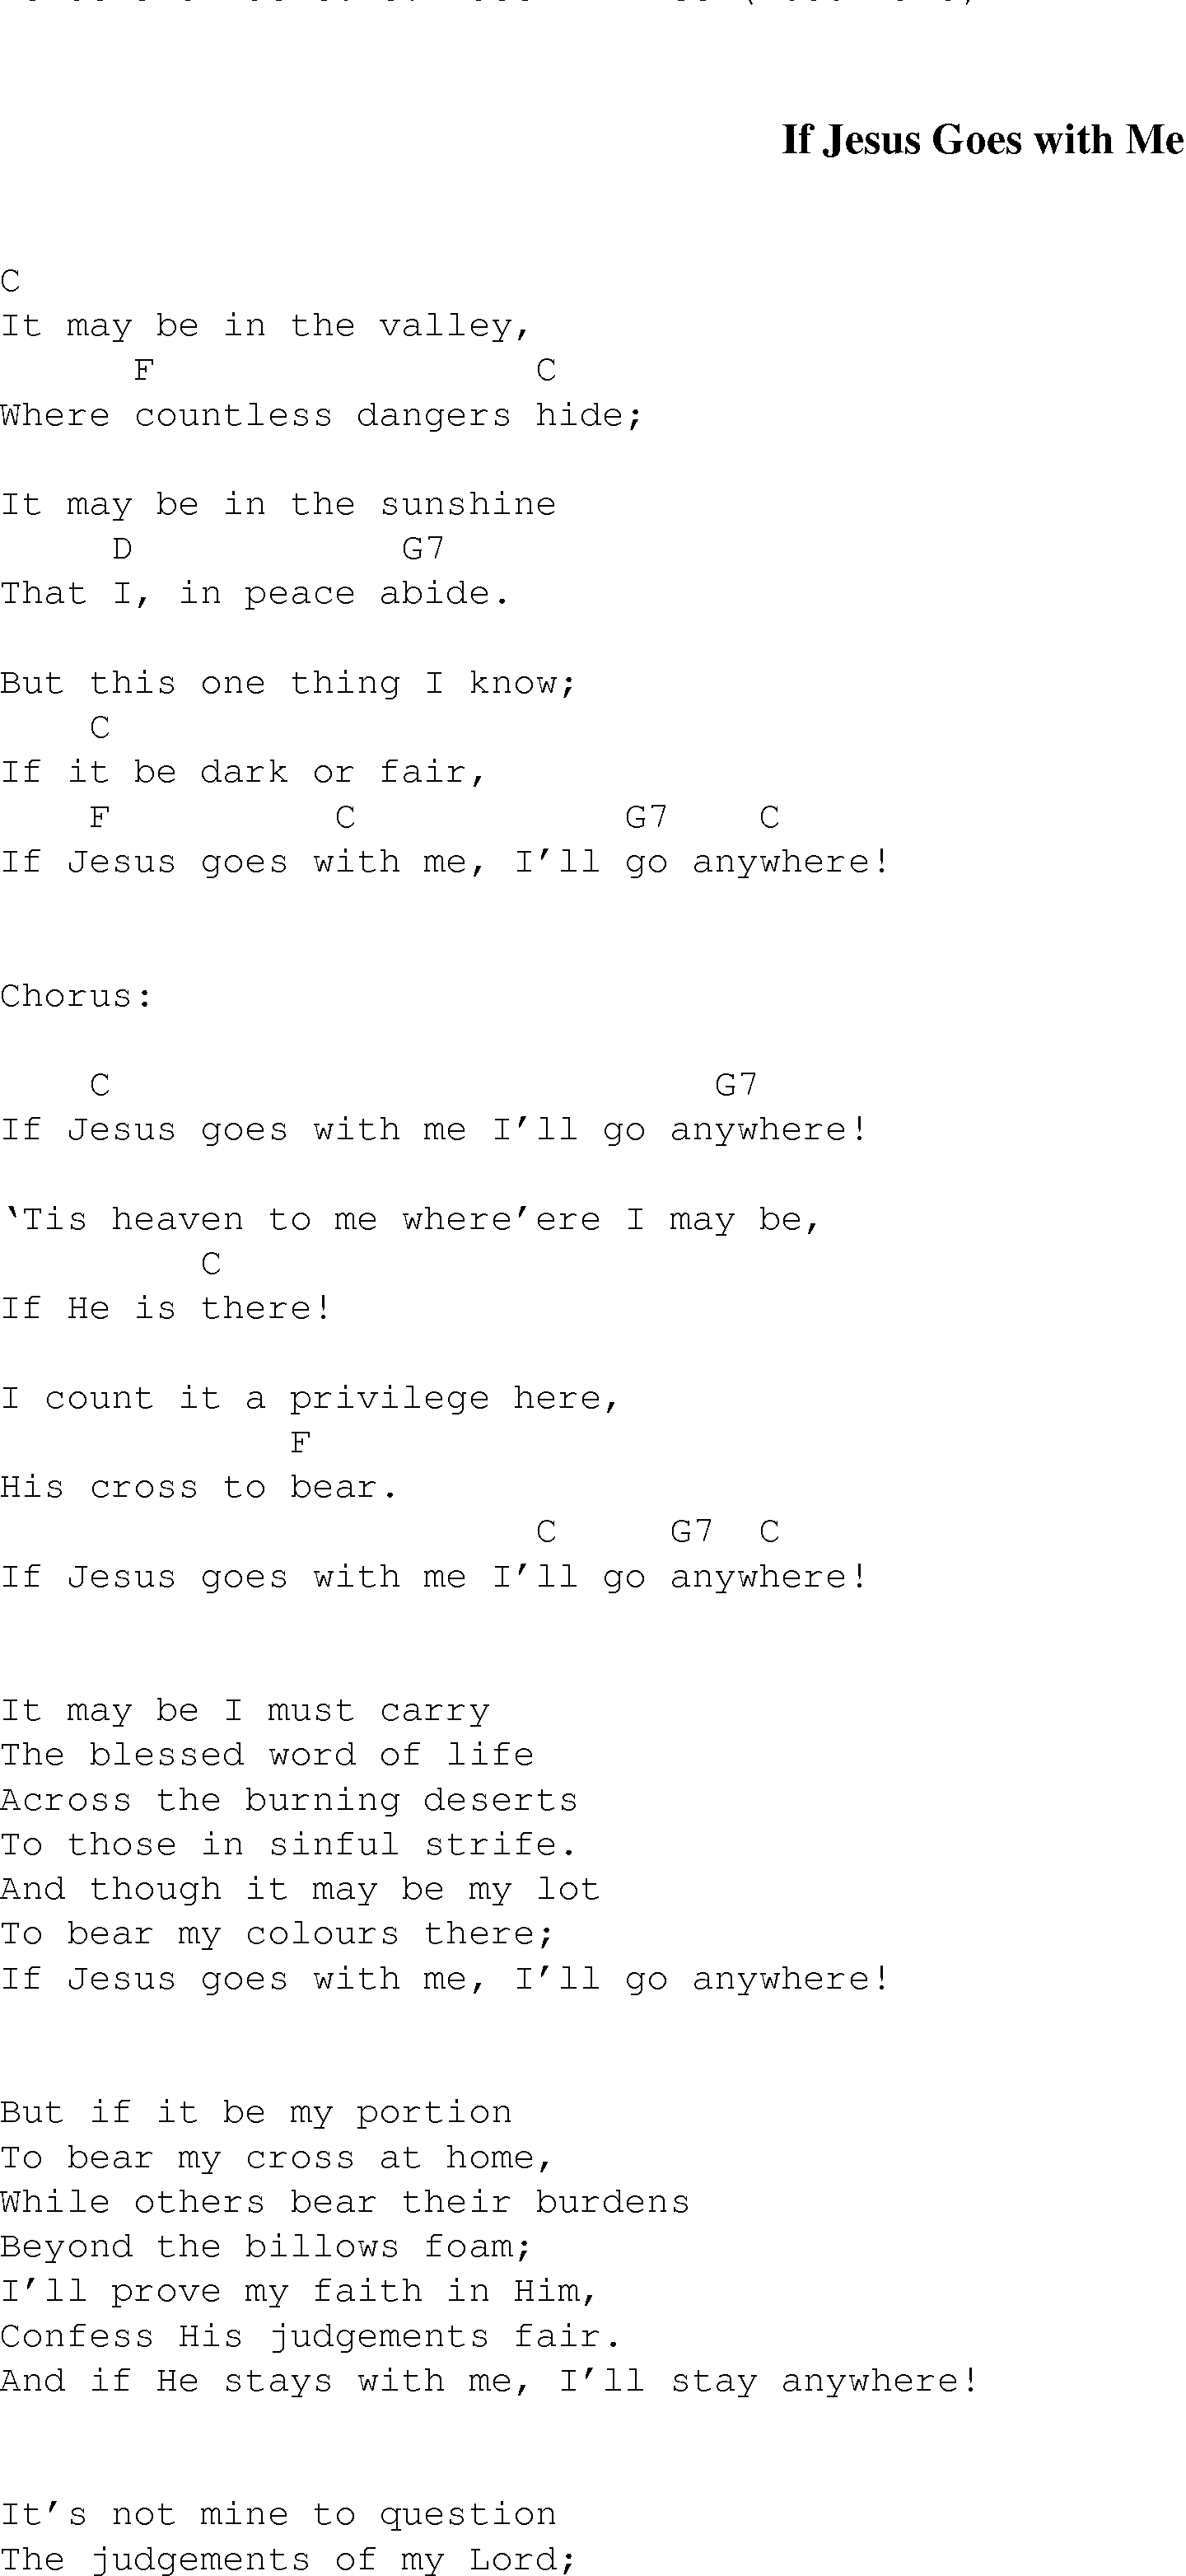 Count On Me Chords If Jesus Goes With Me Christian Gospel Song Lyrics And Chords